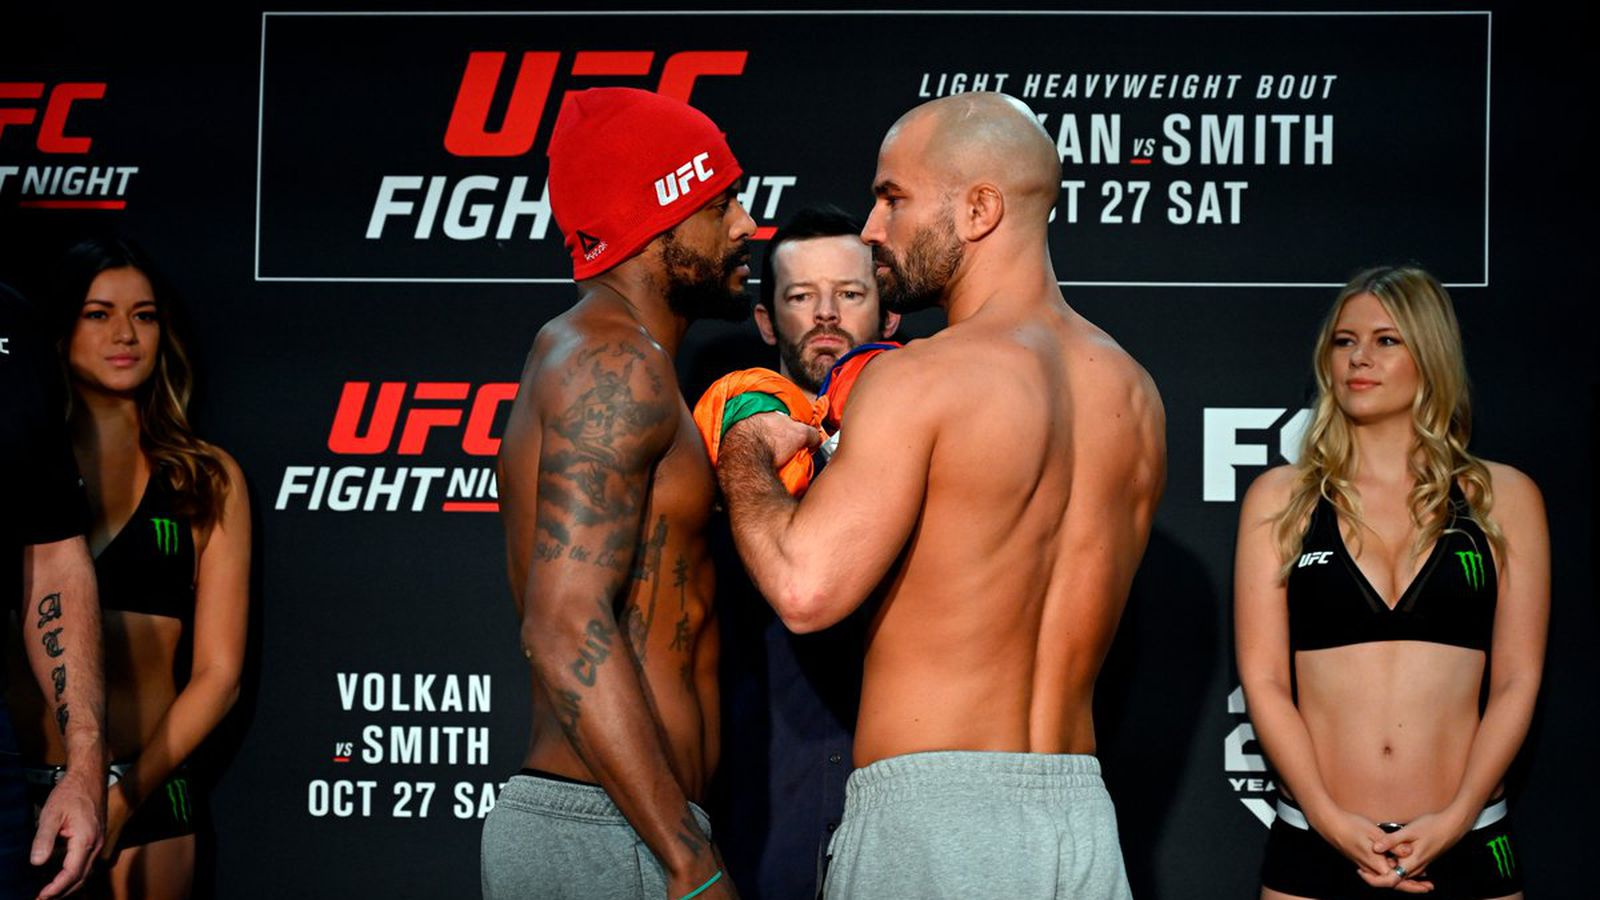 Preview! Johnson Looks To Nail 'Russian Hammer'